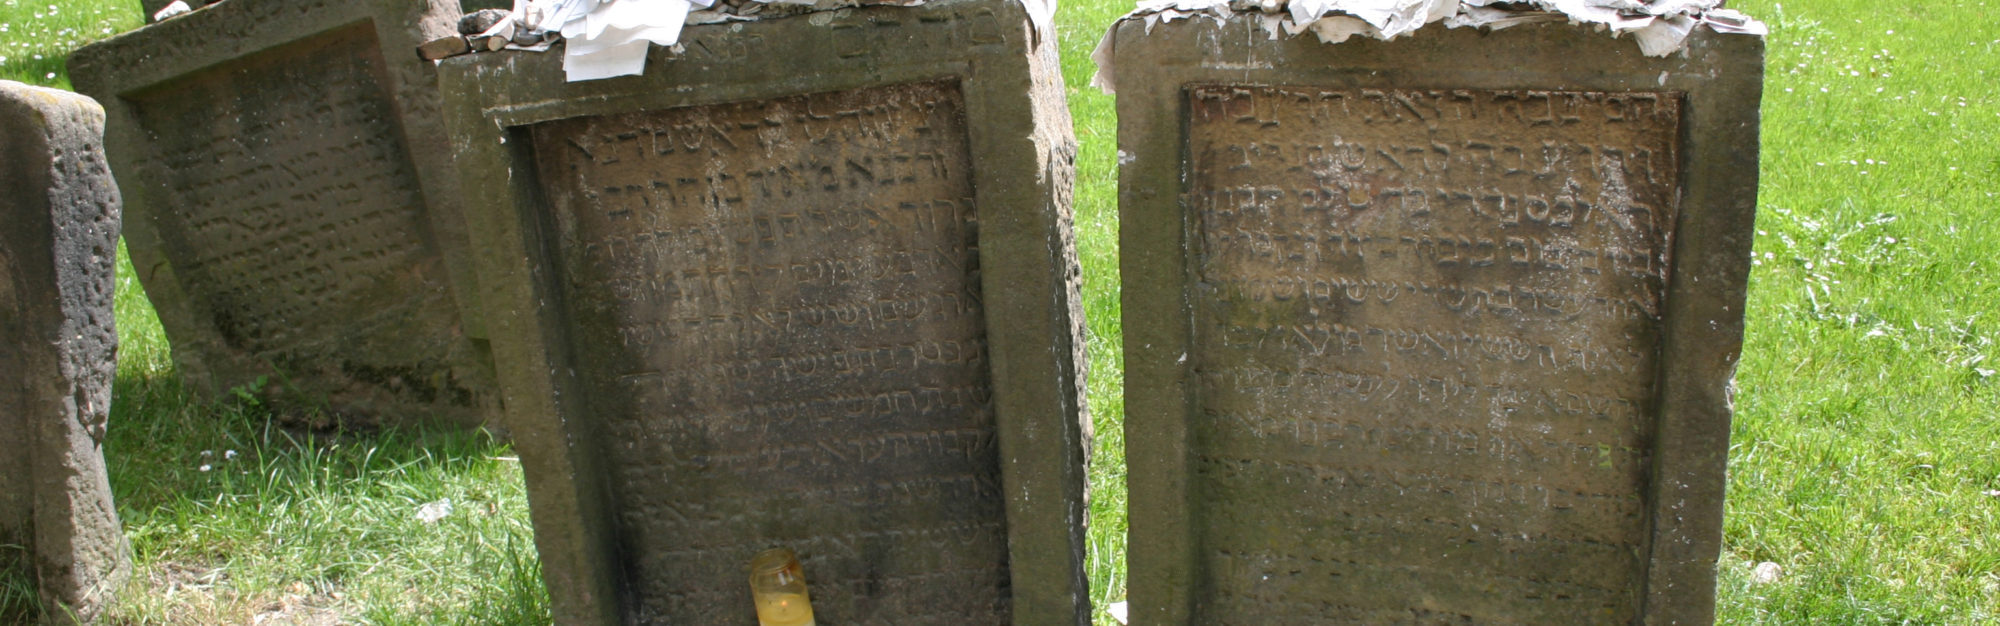 Jewish Cemetery - Worms, Germany